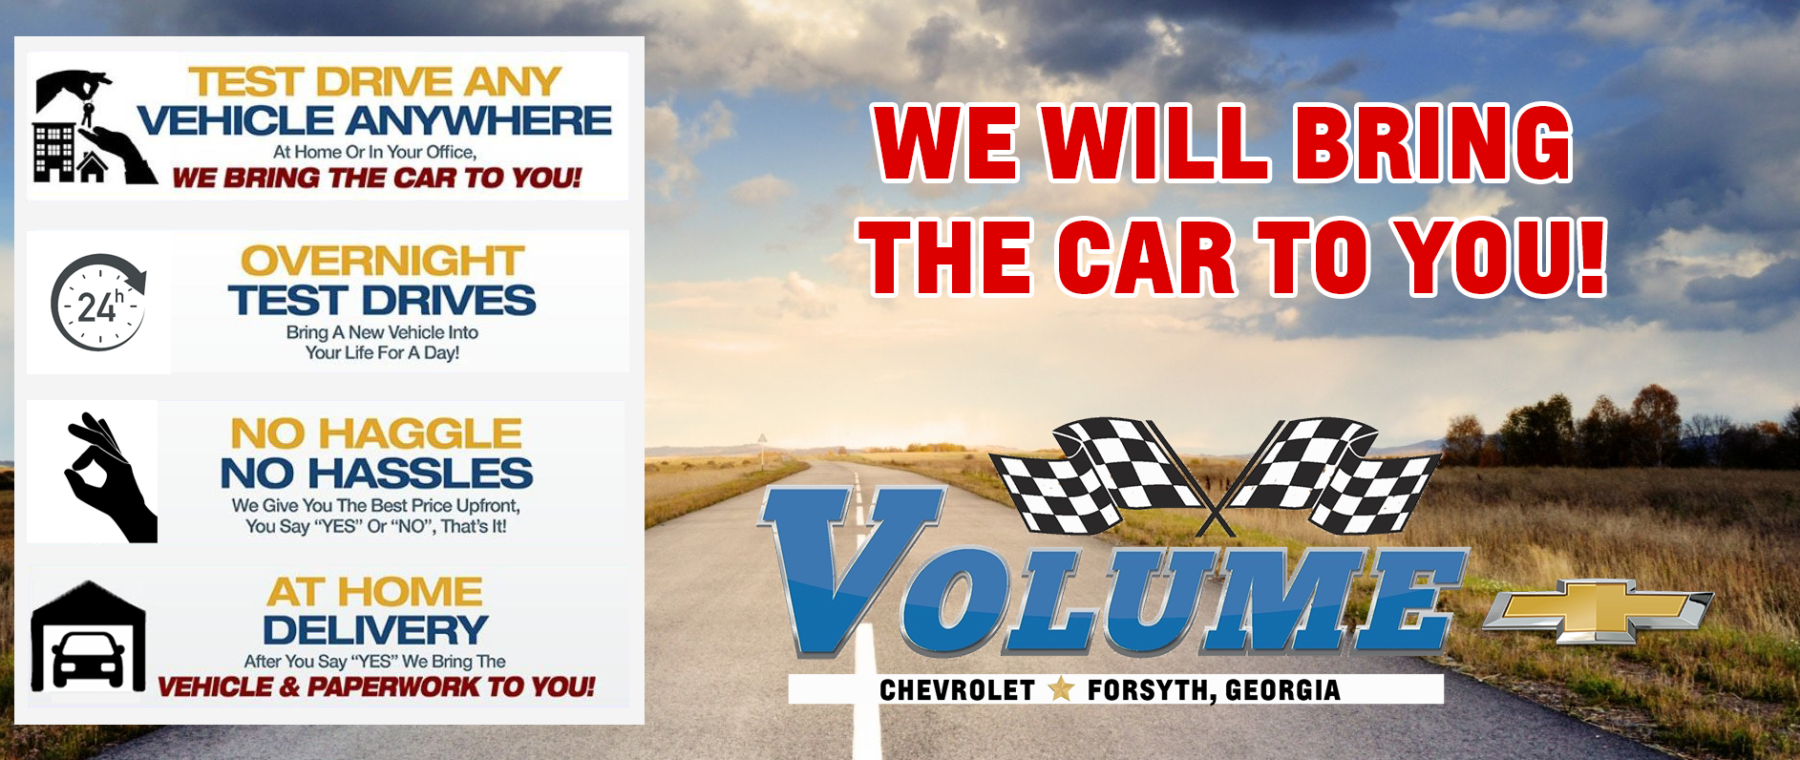 We will bring the car to you!